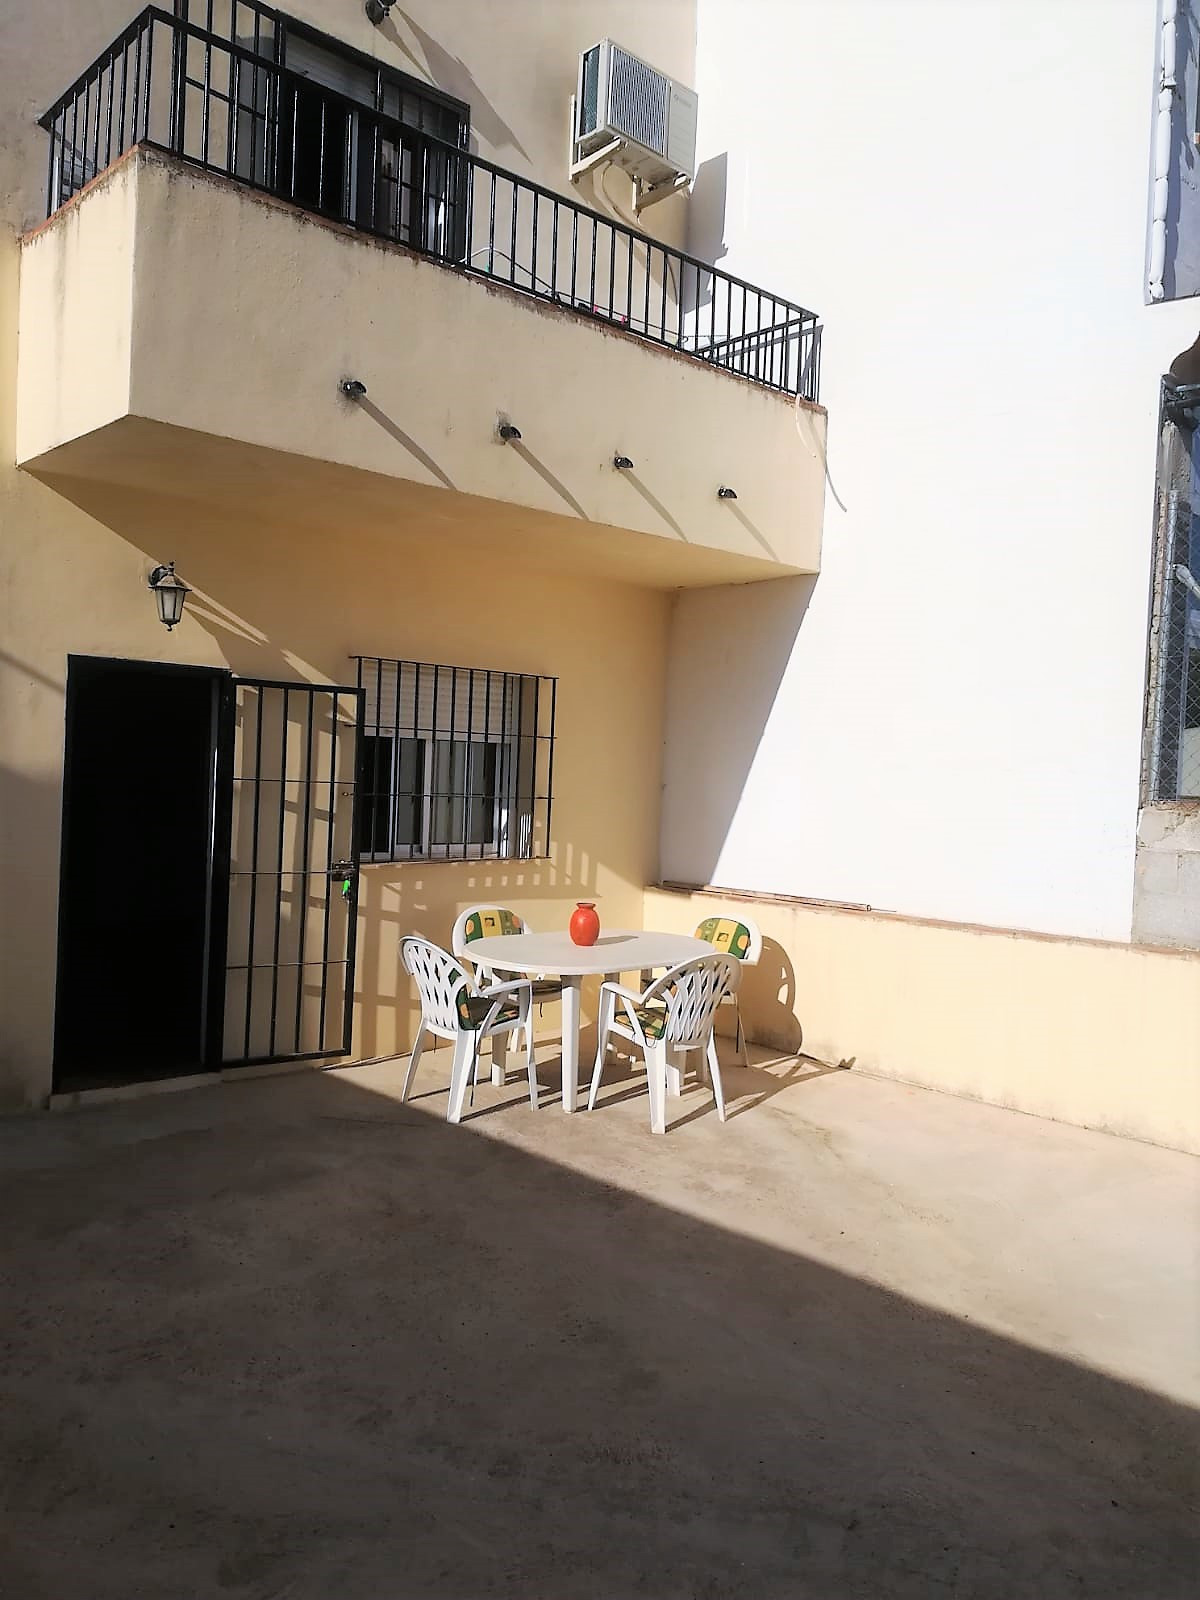 House of about 157 m2 useful approximately, with 3 bedrooms, 2 bathrooms, living room, fully equippe, Spain